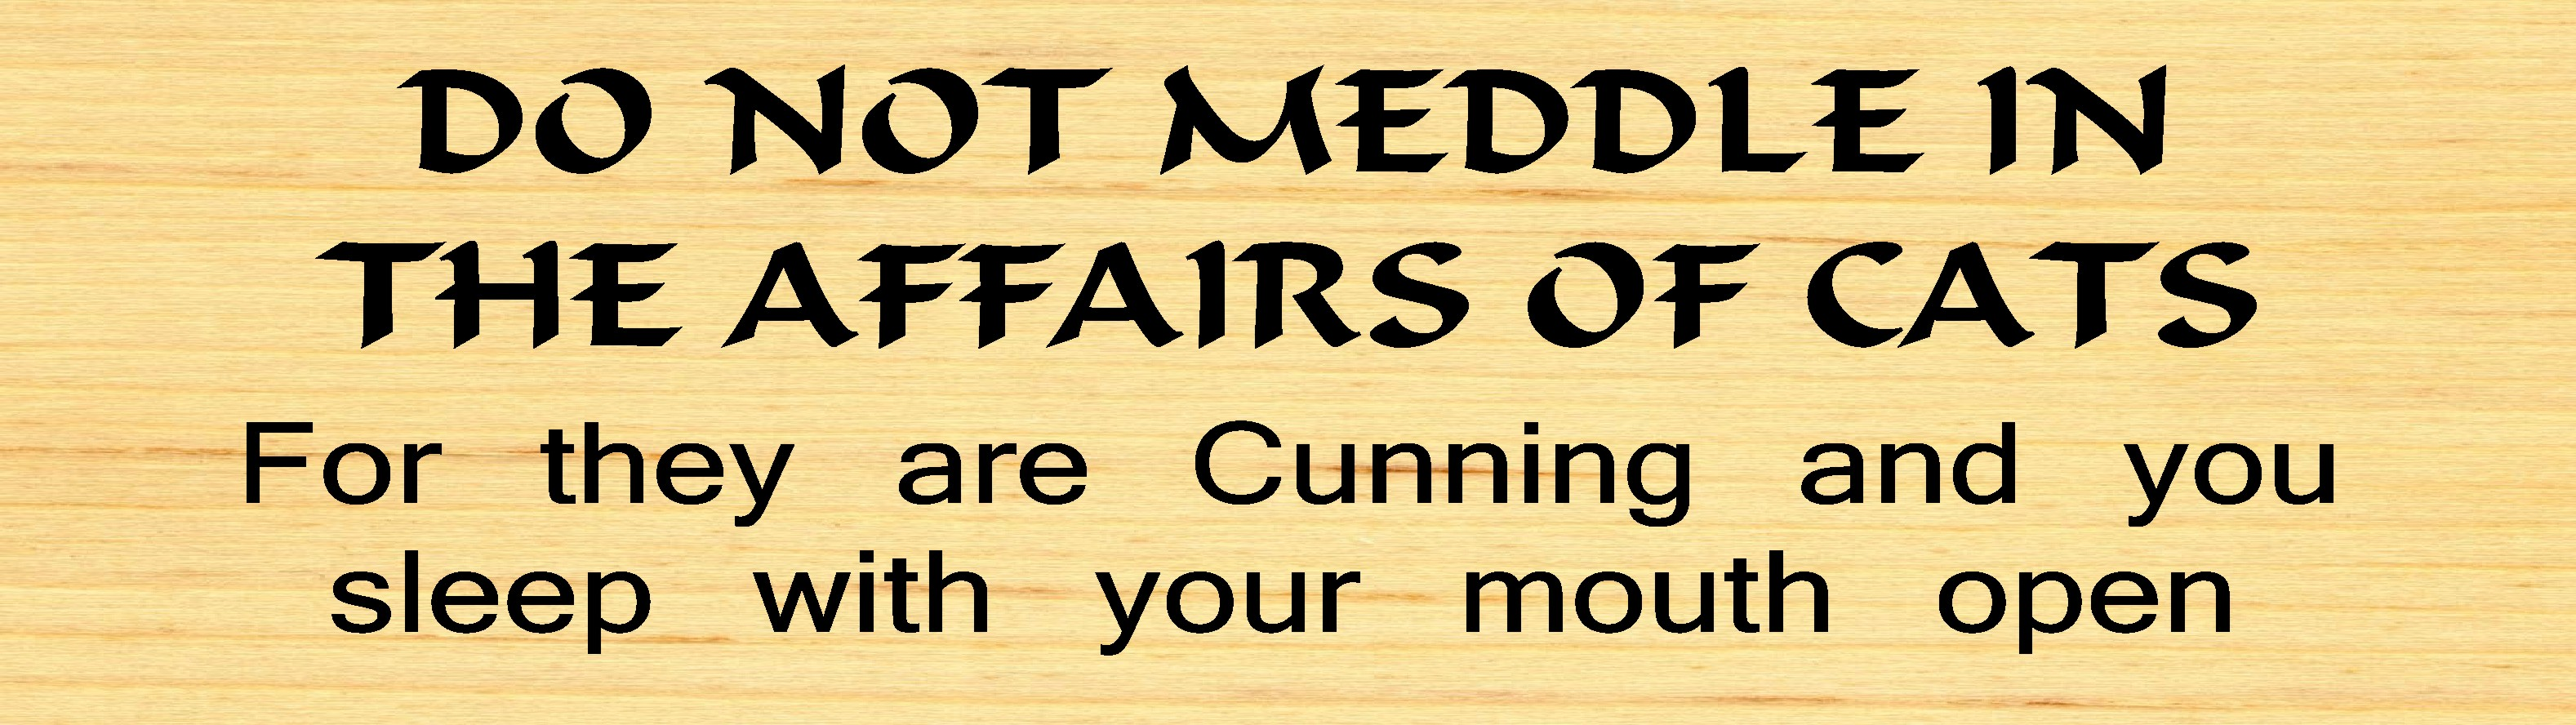 """DO NOT MEDDLE IN THE AFFAIRS OF CATS 10.5"""" X 3"""" WOODEN BLOCK SIGN"""